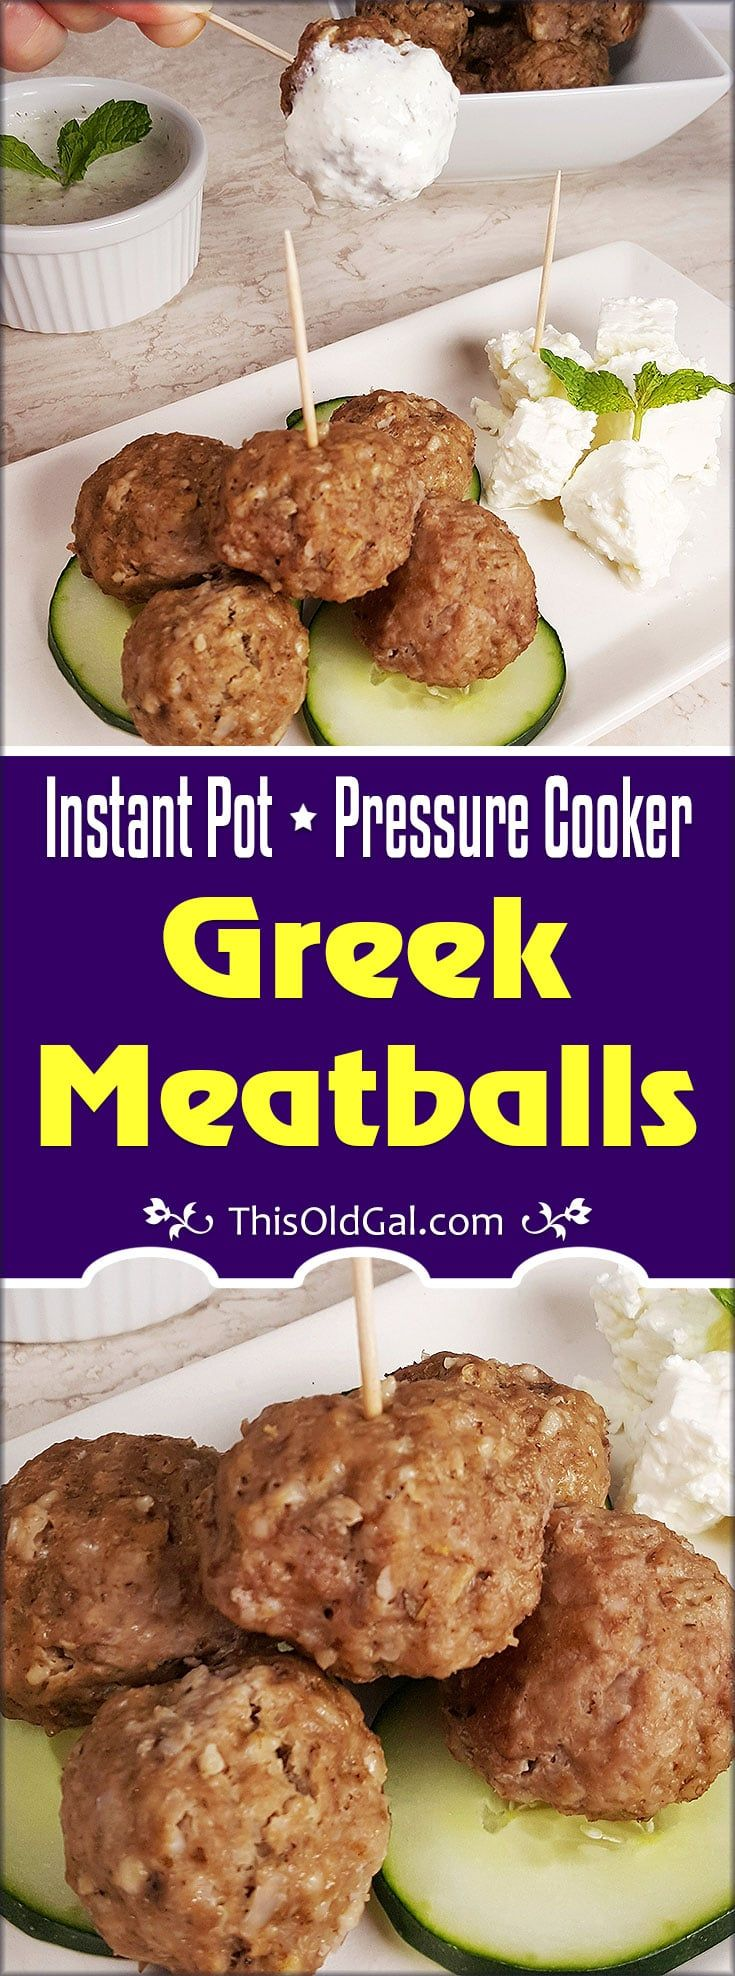 The aroma of Cinnamon, Mint, Cumin from these Pressure Cooker Greek Meatballs {Keftedes} will have your mouth watering and your tummy growling.     via @thisoldgalcooks